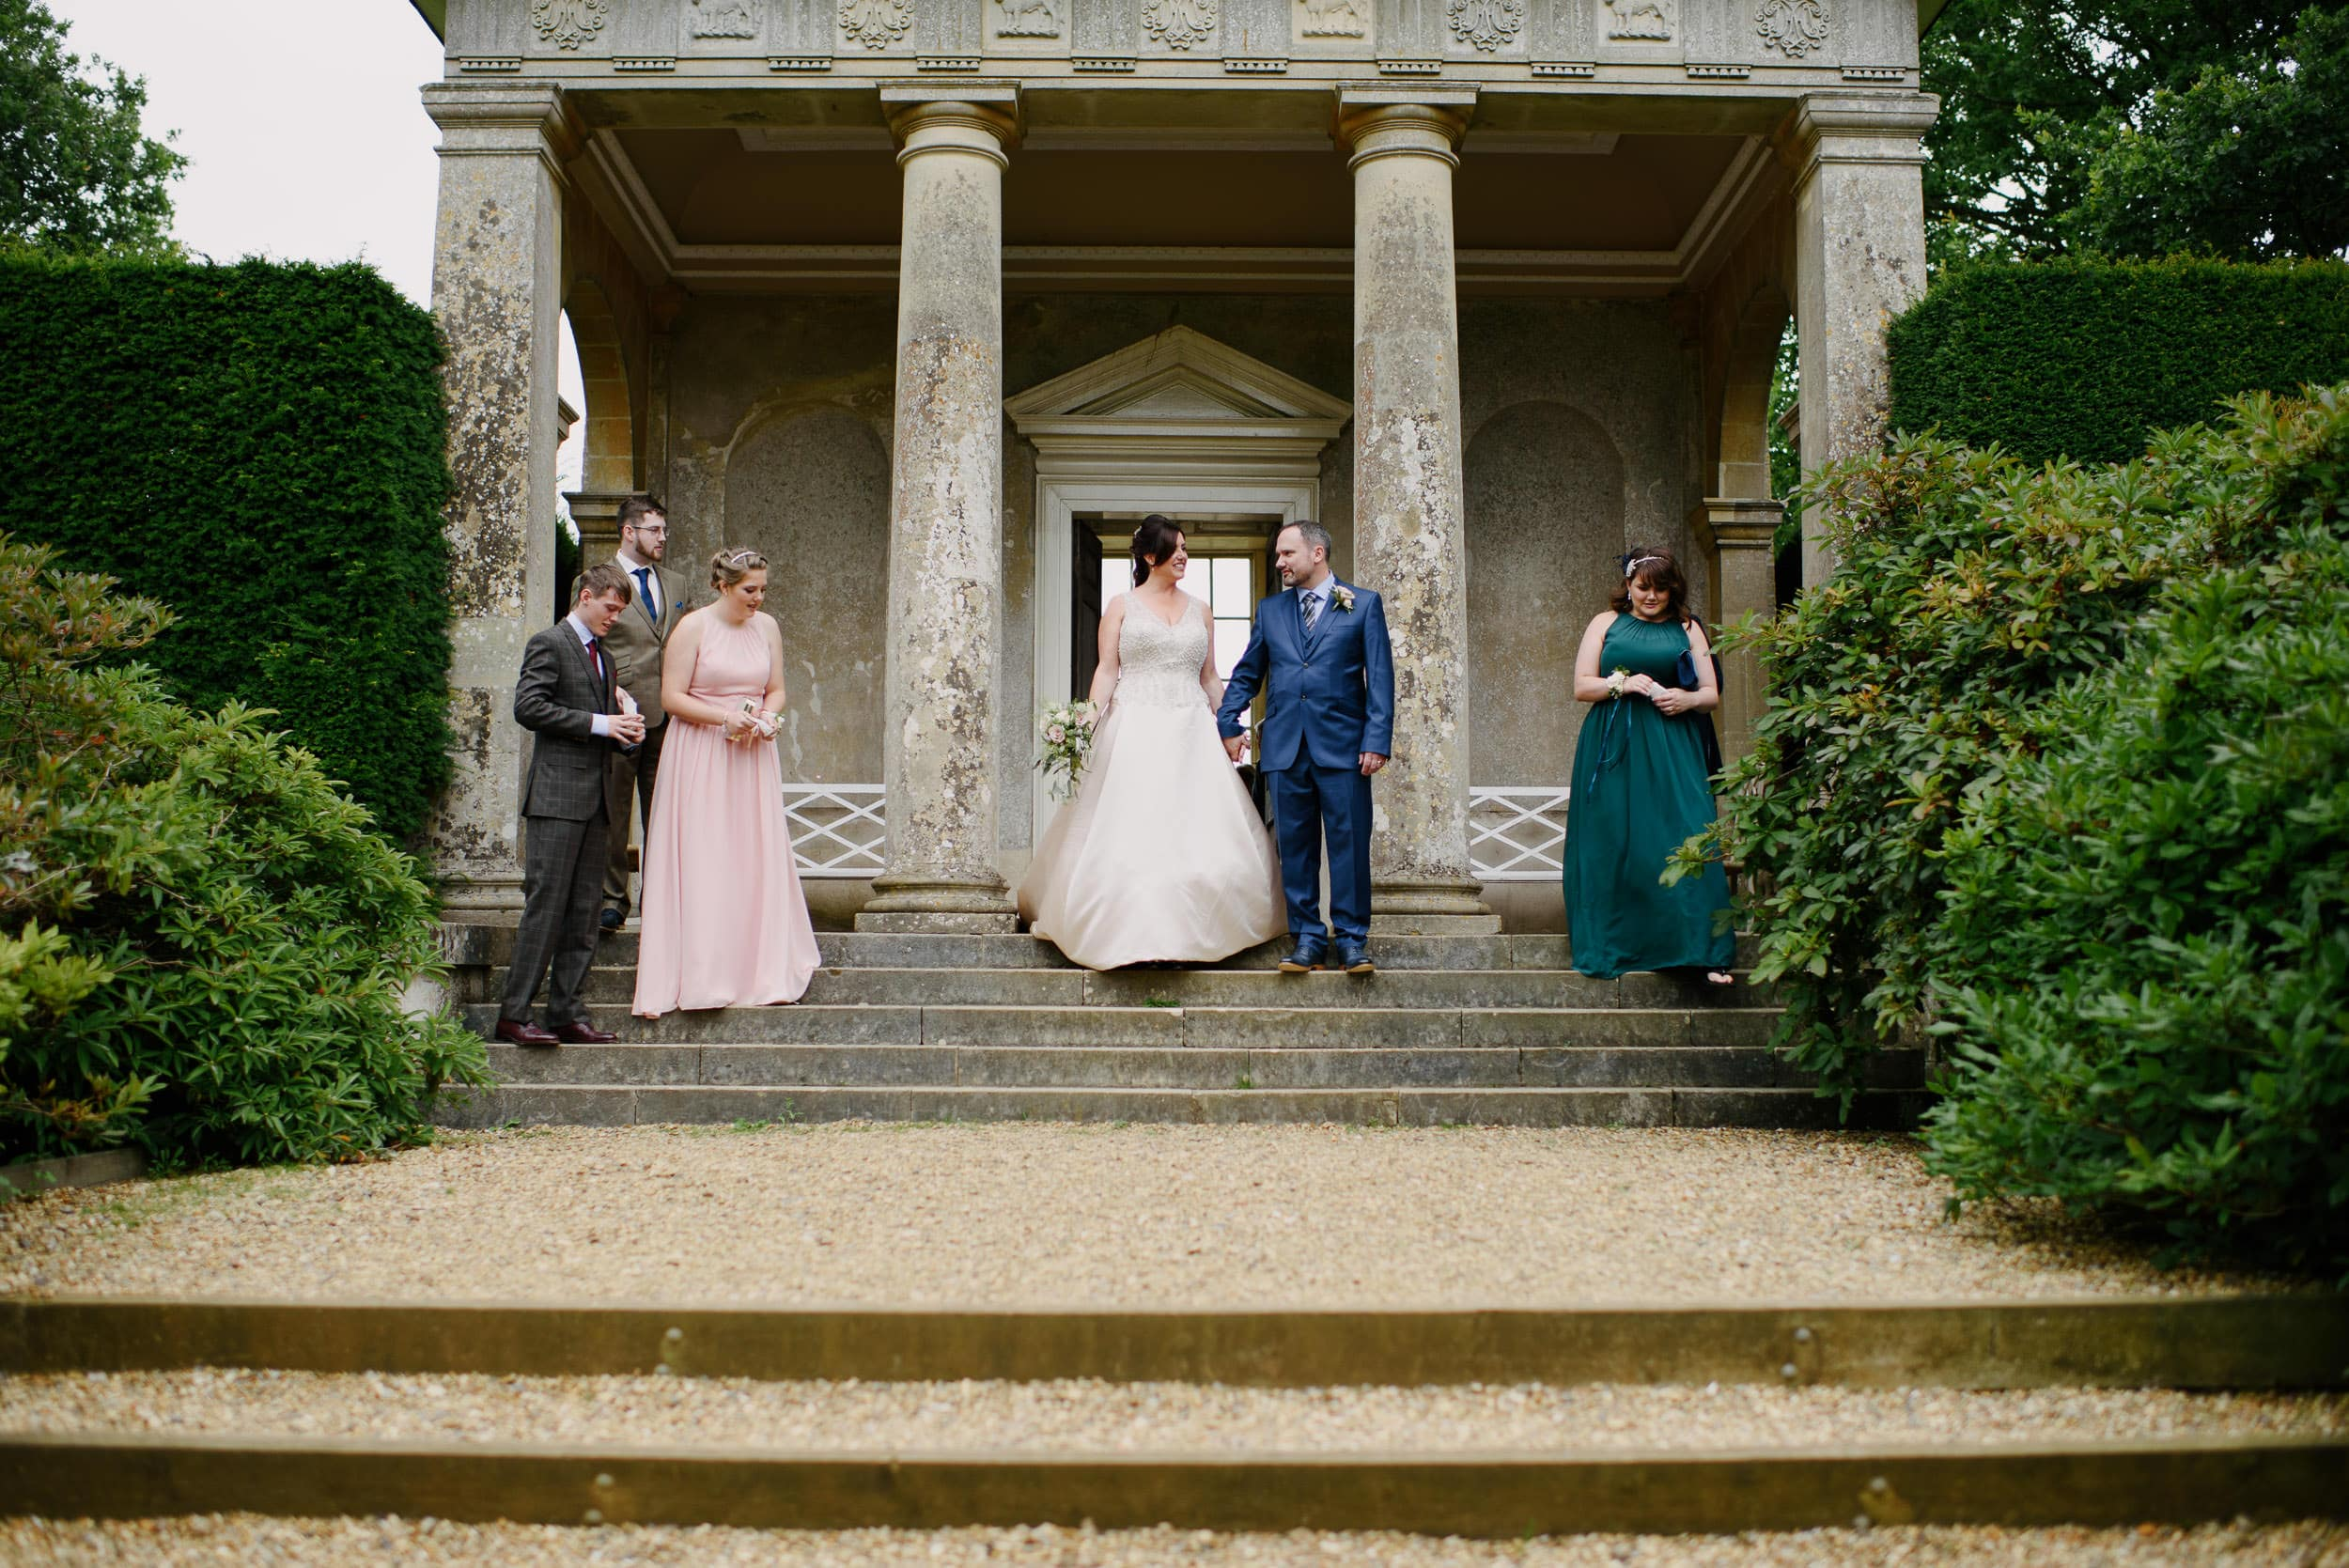 Suzy & Mike - Blickling Hall Wedding 19